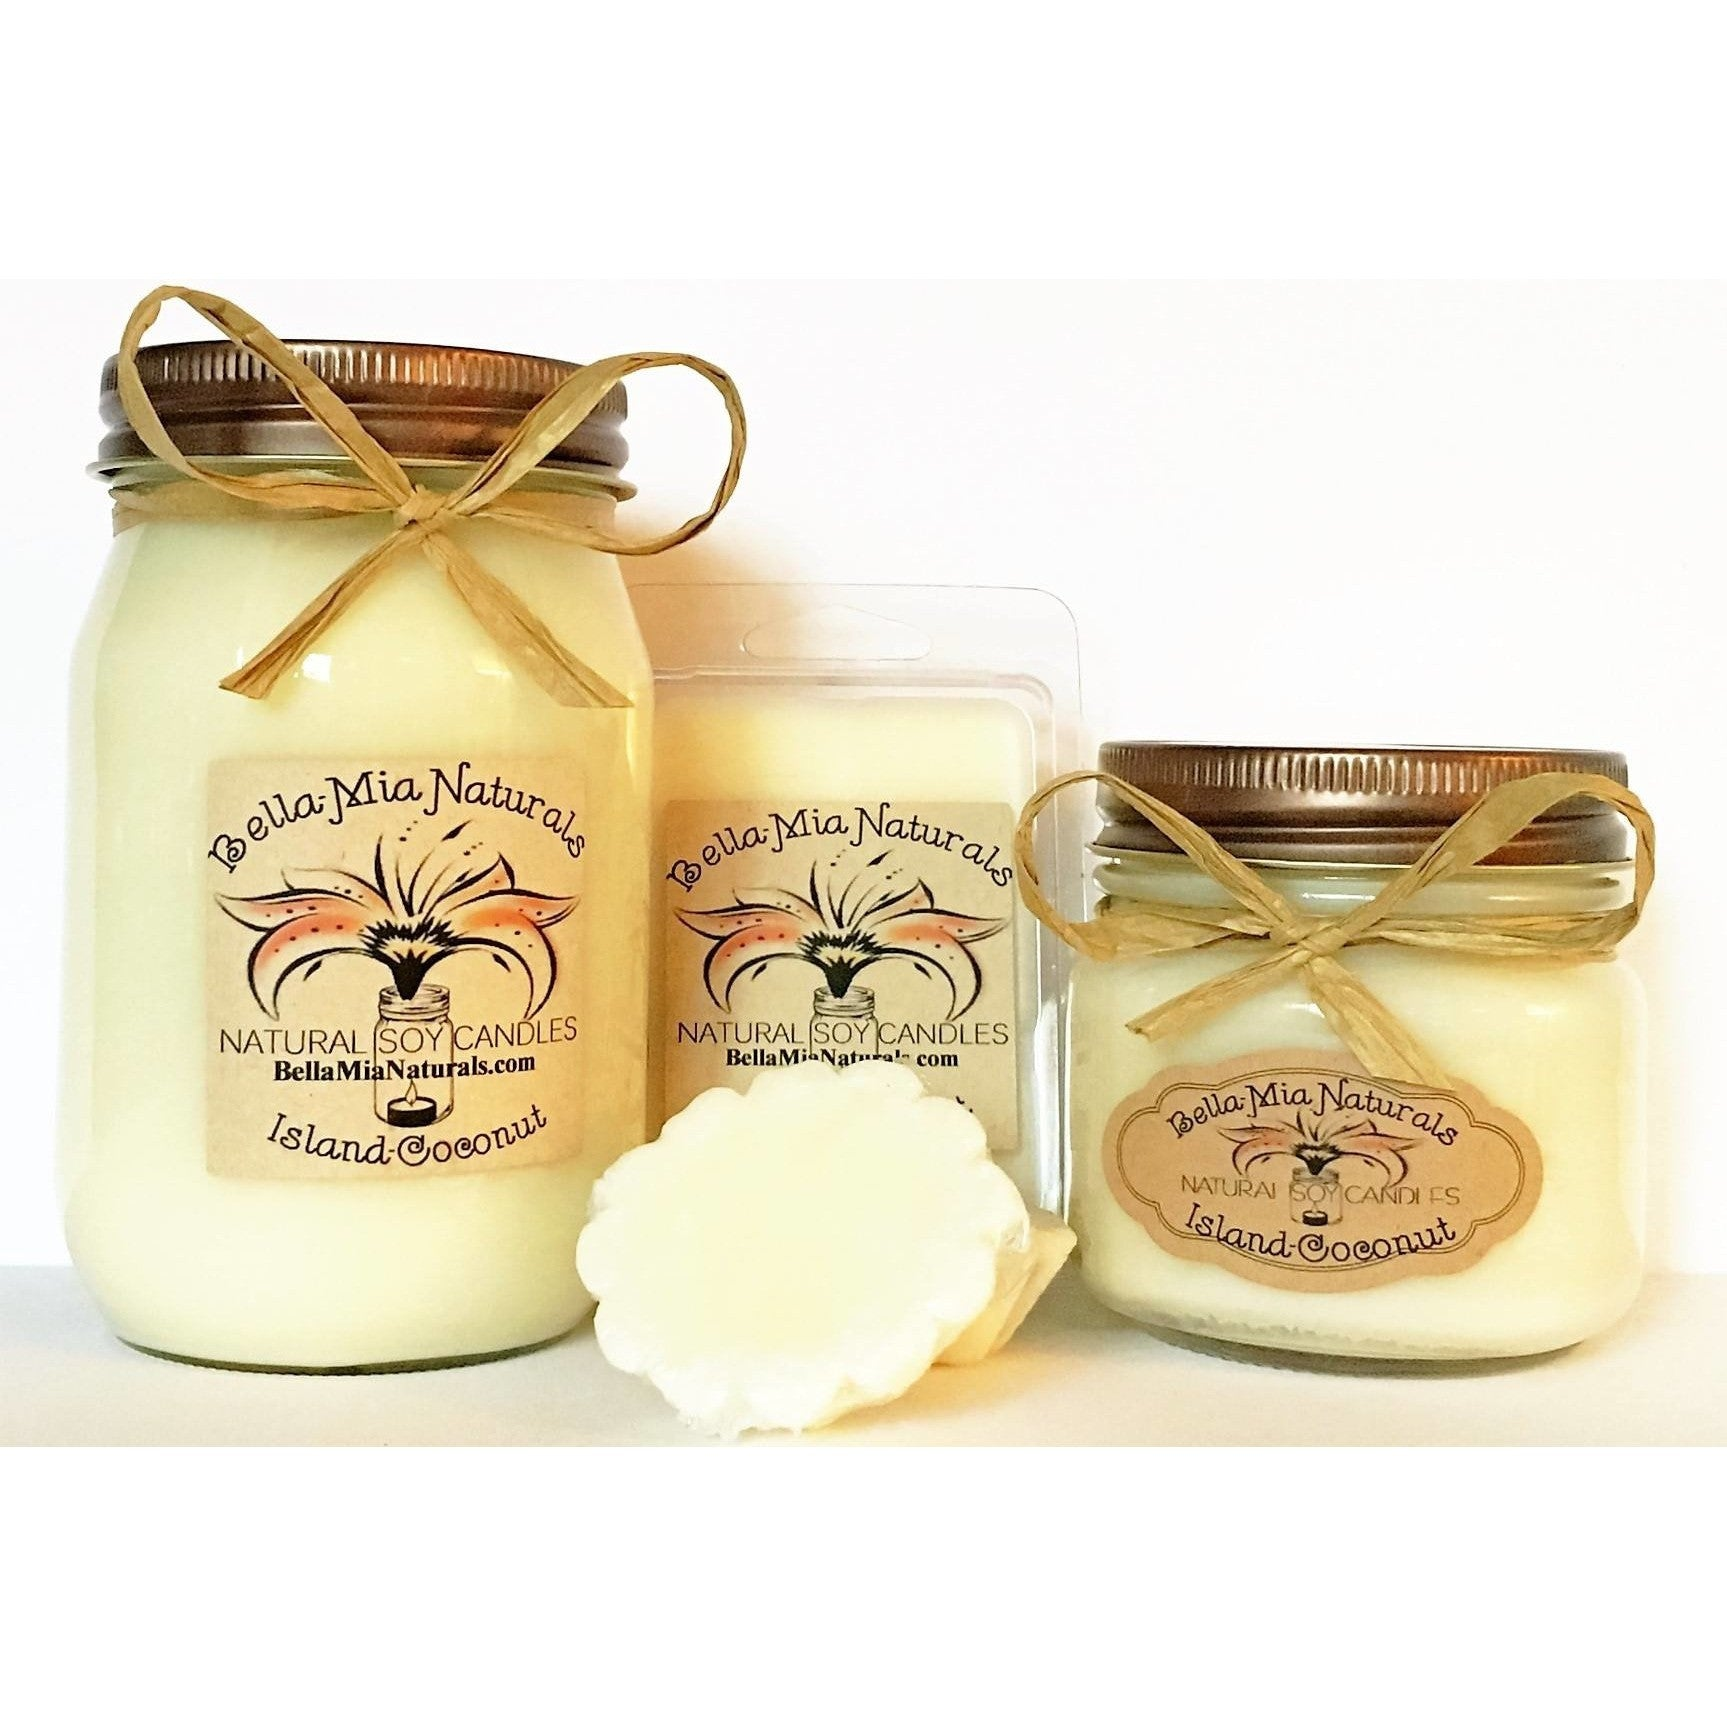 Island-Coconut Natural Hand Poured Soy Candles -  - Bella-Mia Naturals All Natural Soy Candles & Lip Balms - 1